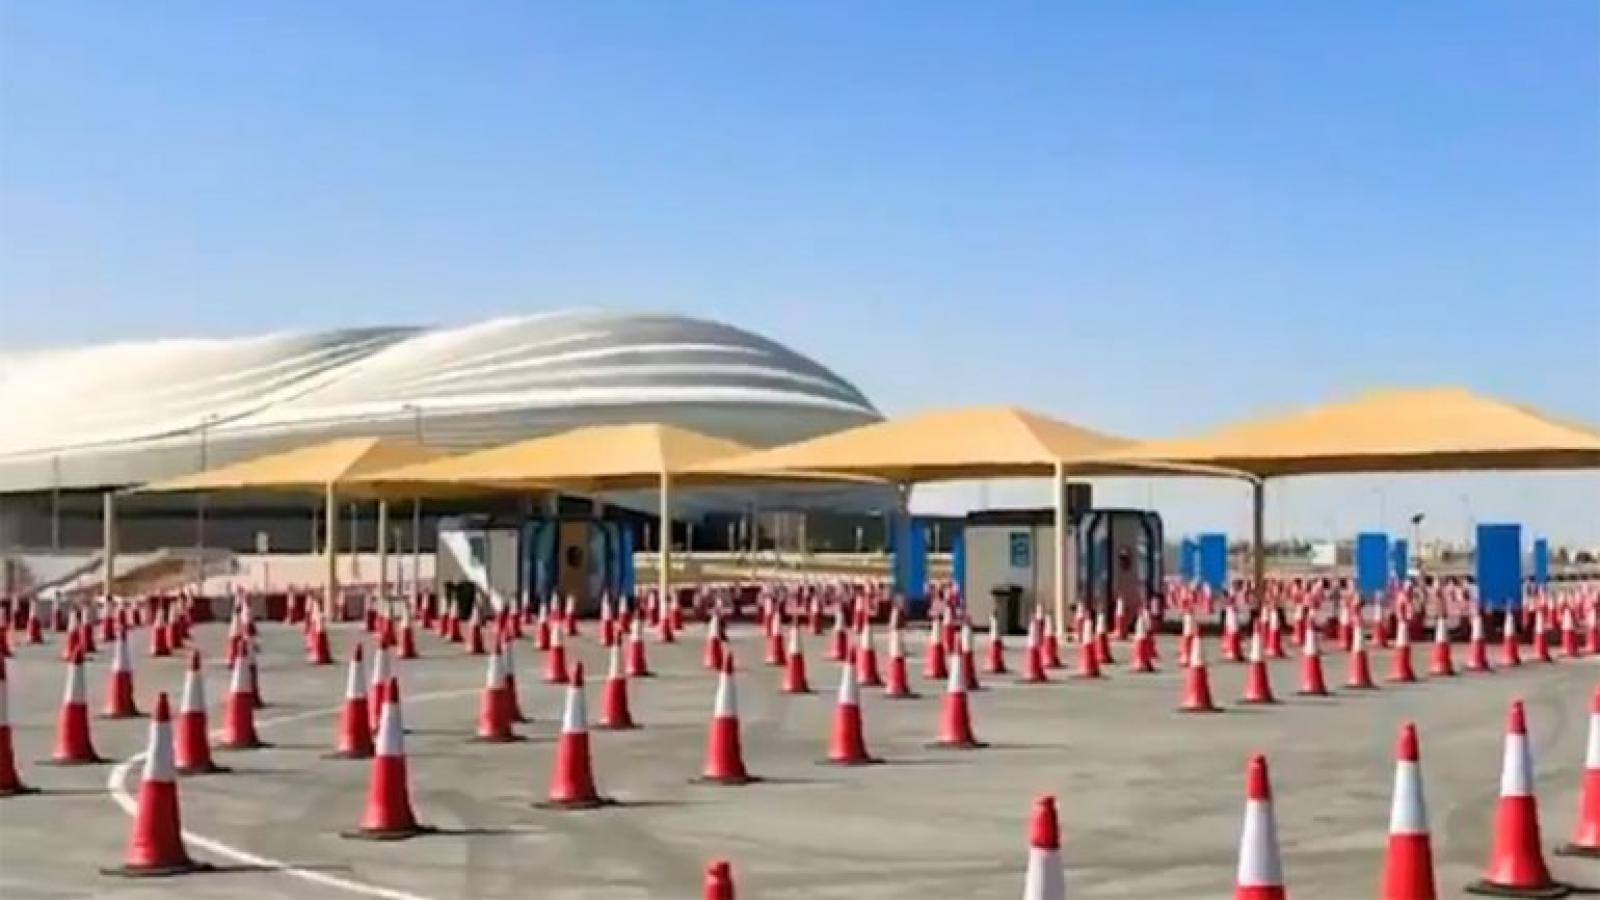 MoPH opens second drive-through COVID-19 vaccination center in Al Wakra